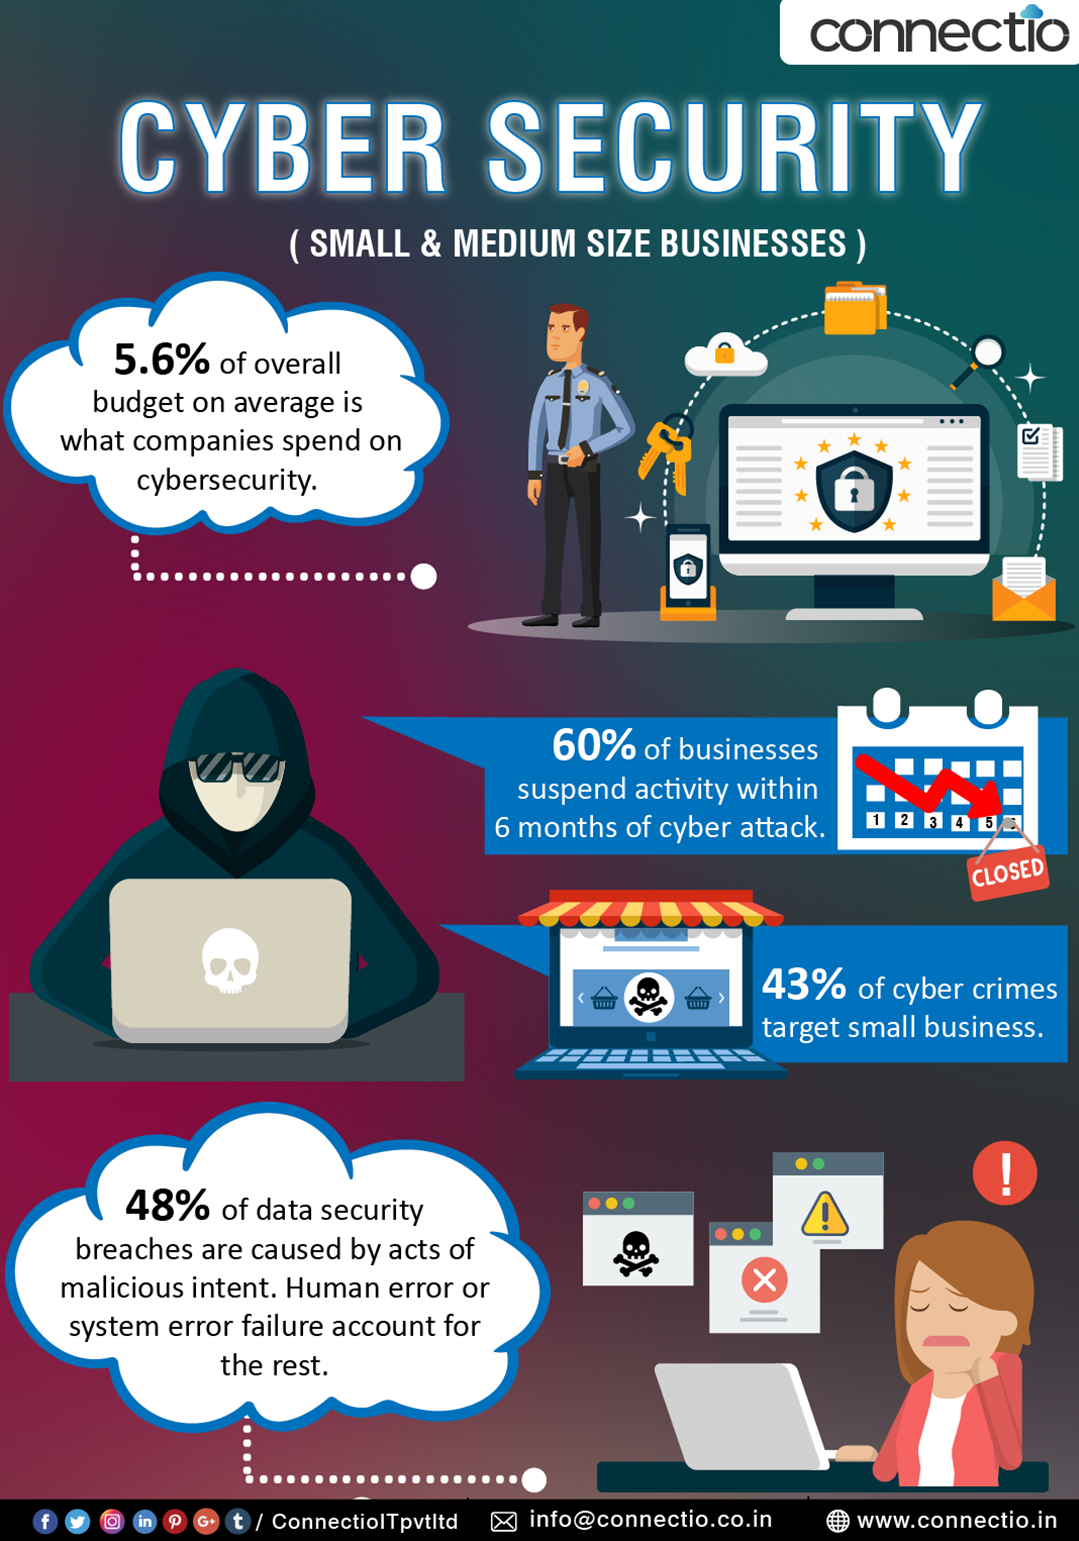 Cybersecurity Is Very Important For Small And Medium Businesses 43 Of Cyber Crimes Targets Small Busin Cyber Security Cloud Computing Services Cloud Services